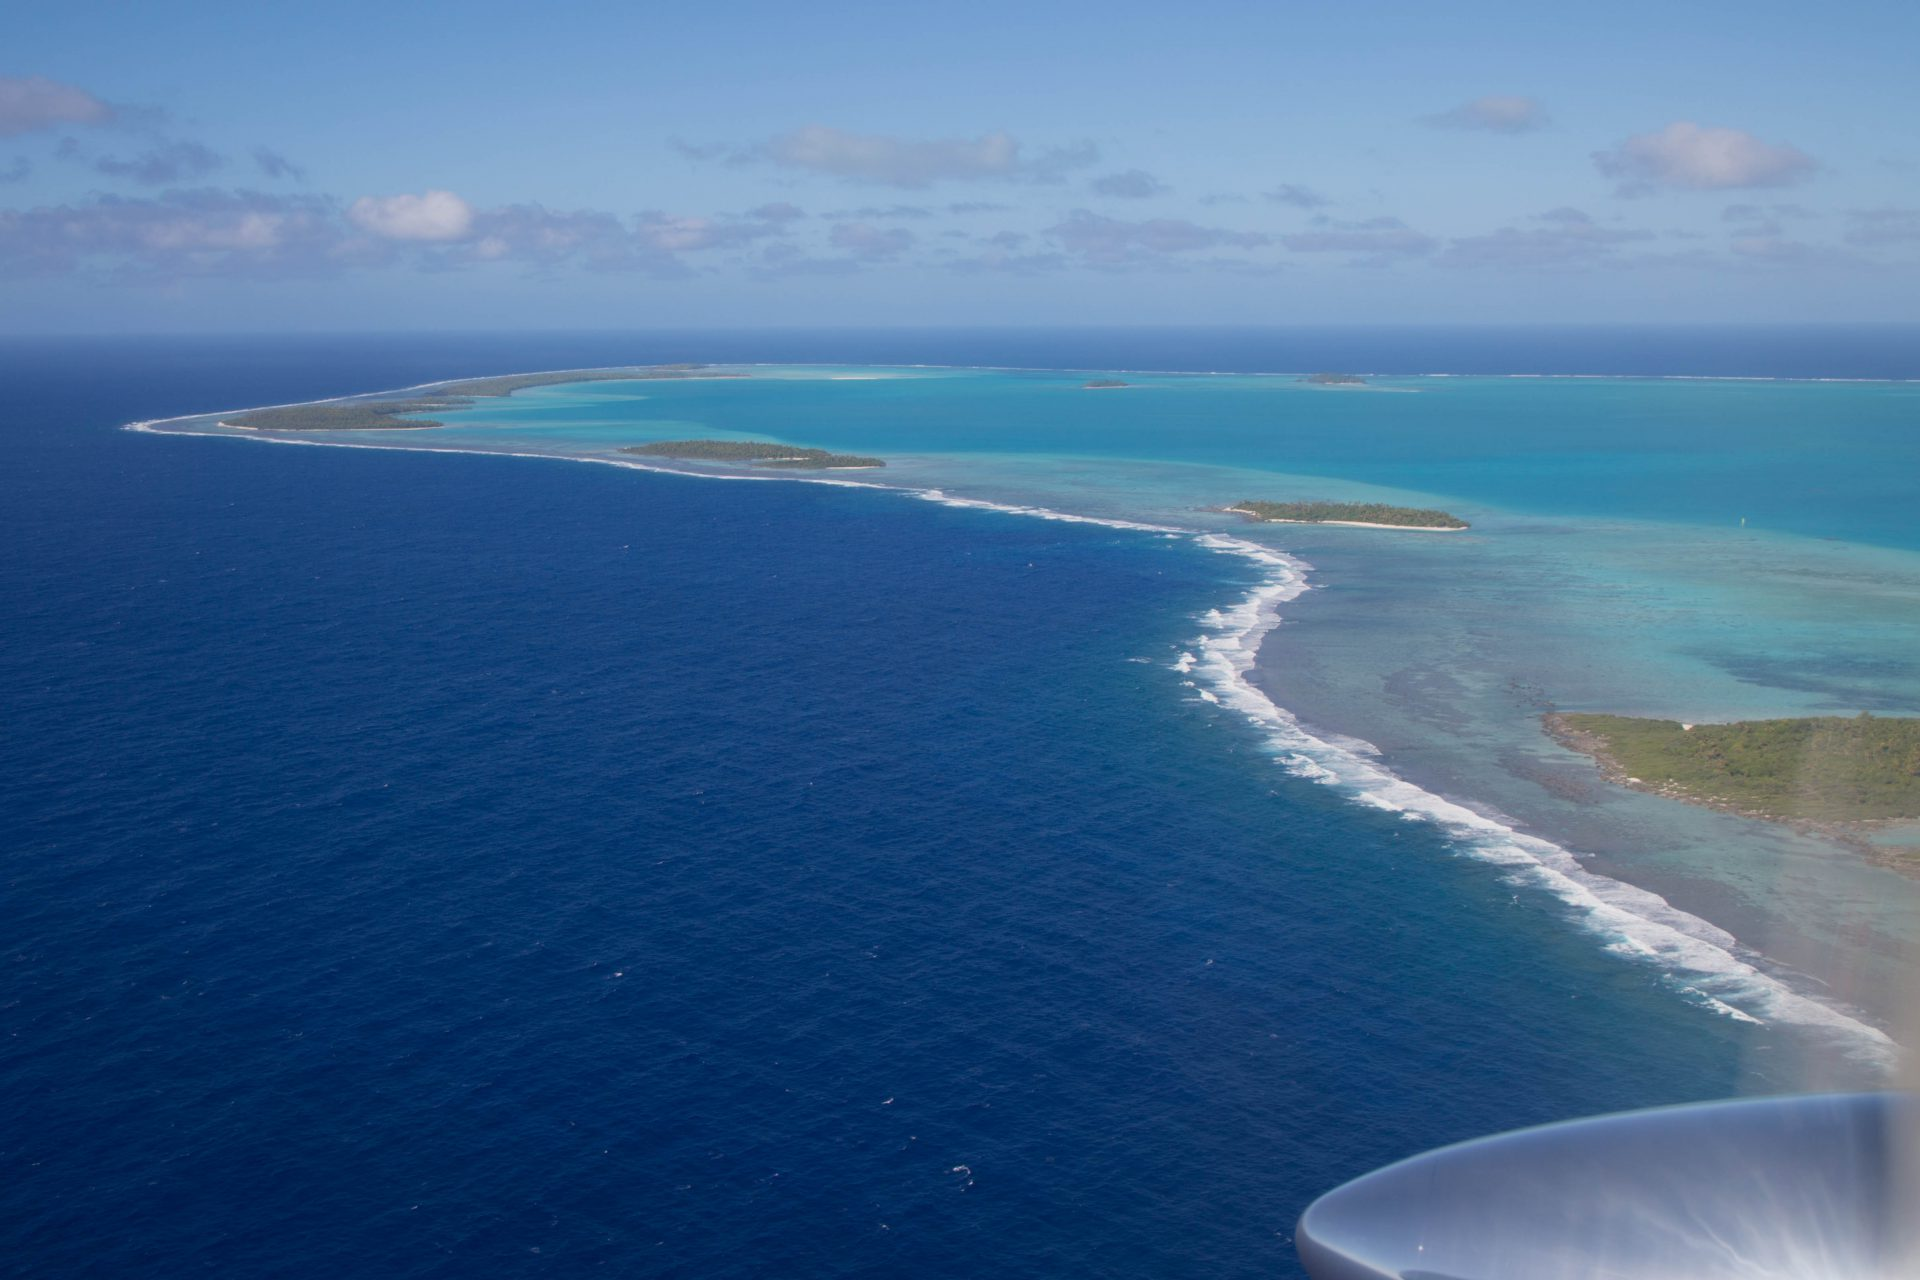 Aerial view of part of the Lagoon, Aitutaki